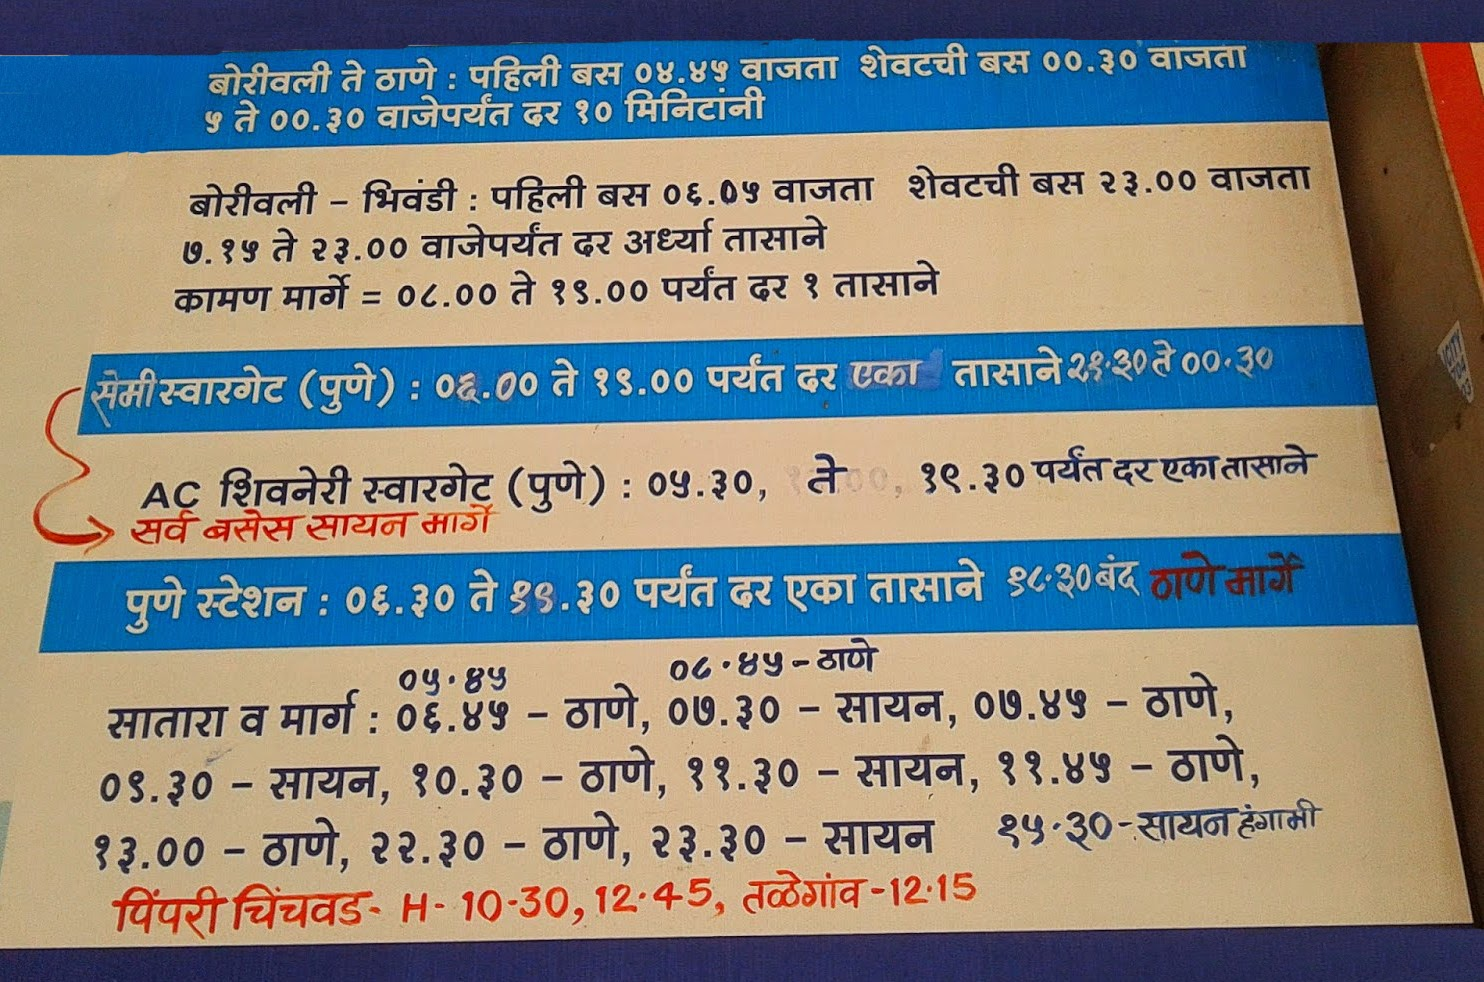 Borivali ST Stand Time Table